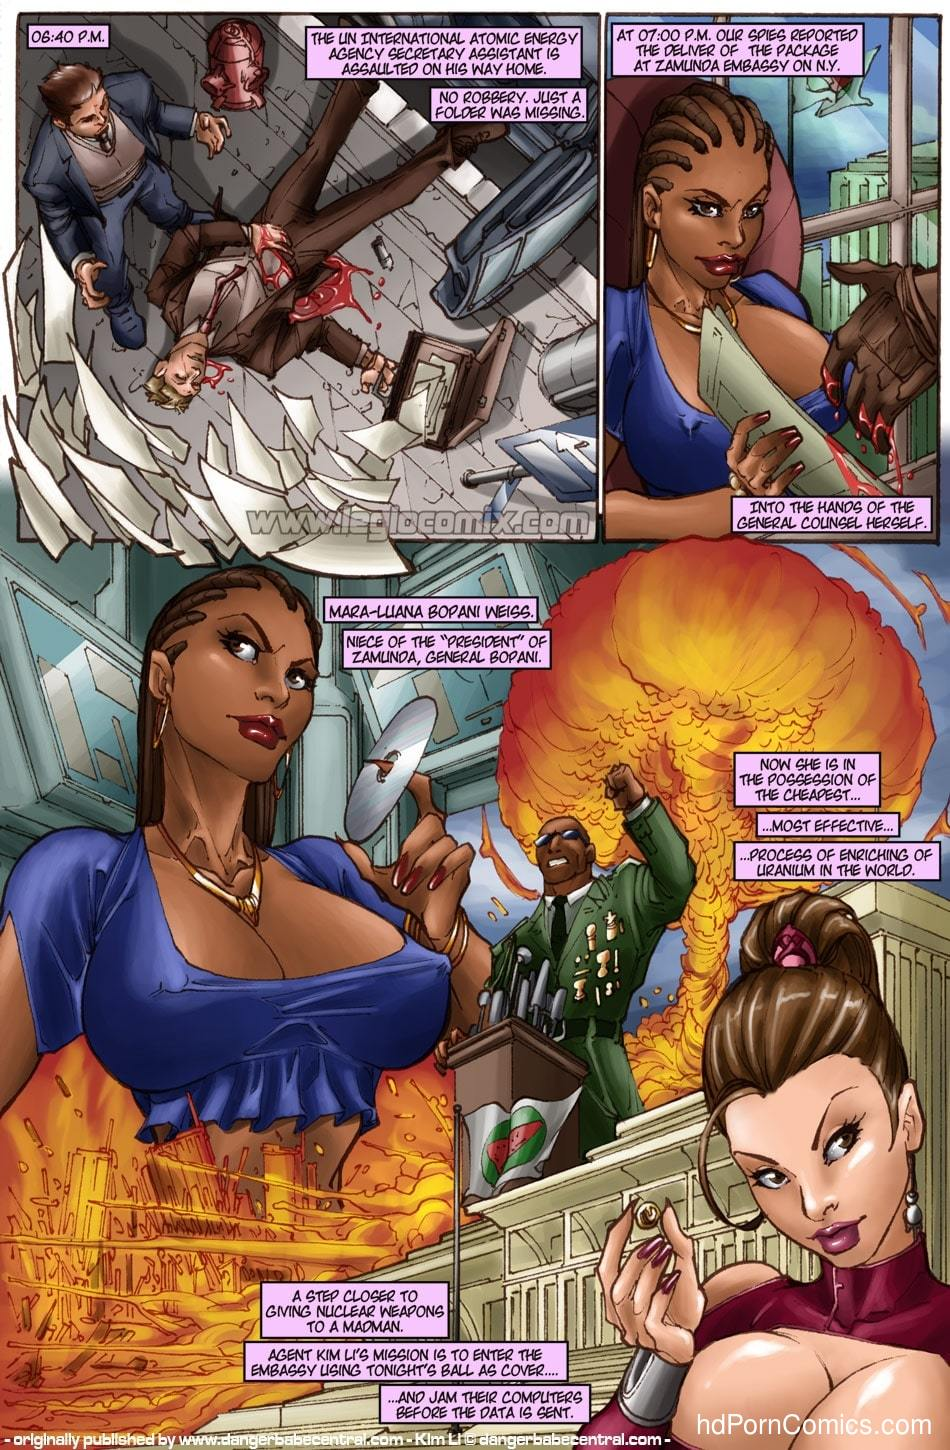 Kim Li - The Zamunda Affair2 free sex comic